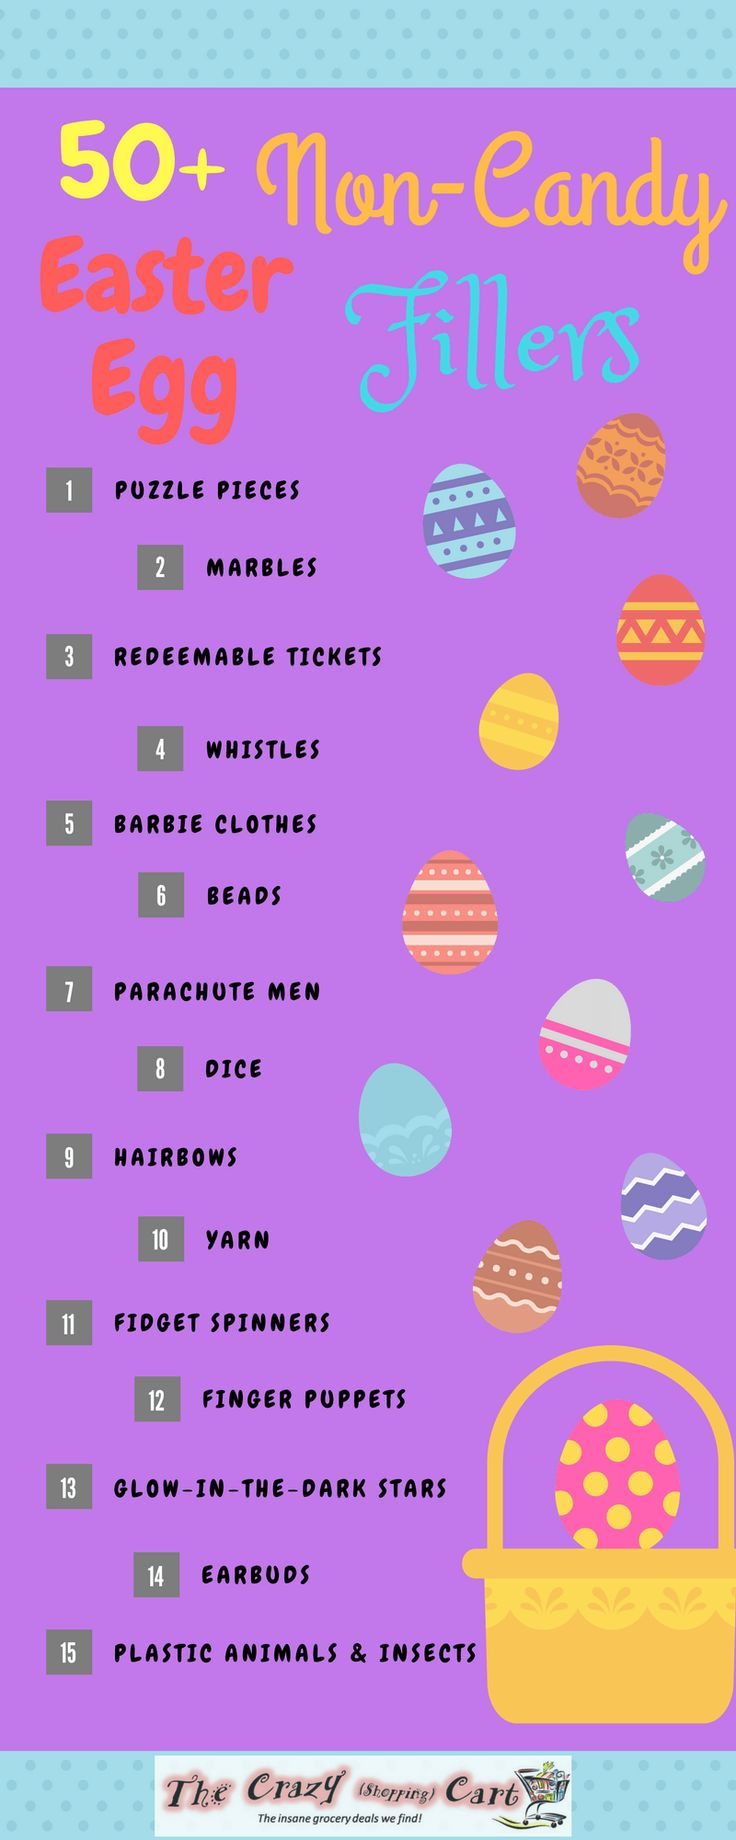 Easter is coming up!  Do you need some ideas for Easter egg fillers that aren't candy or food, but aren't extremely expensive?  This is large list of frugal Easter egg hunt prizes that are not candy or food, along with where you can purchase them at an inexpensive price!